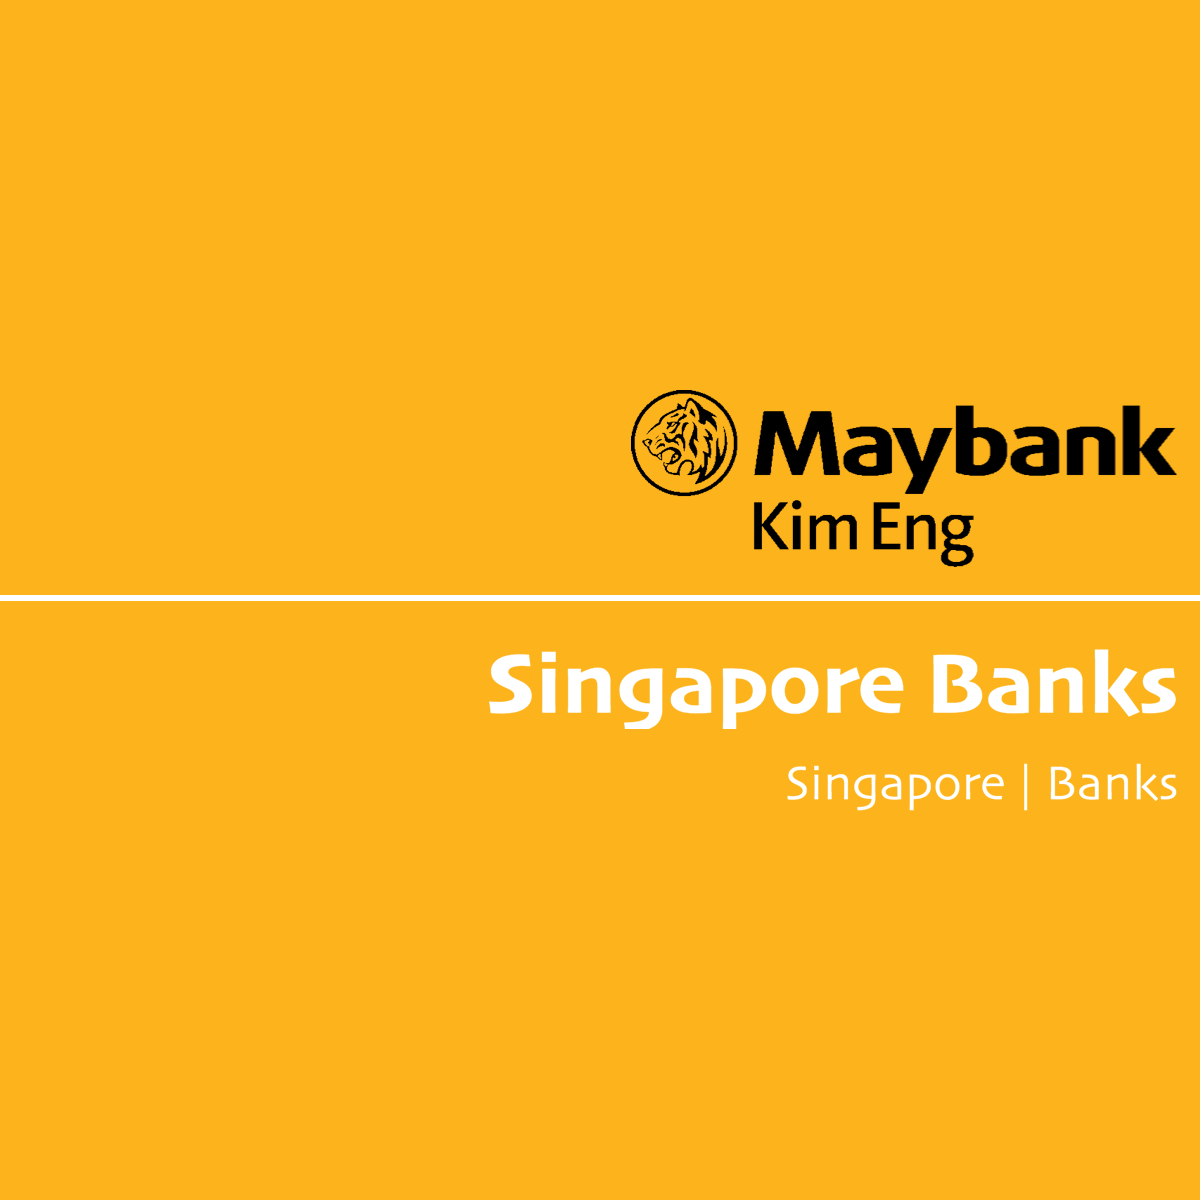 Singapore Banks - Maybank Kim Eng 2018-05-21: Scope For Liability Management